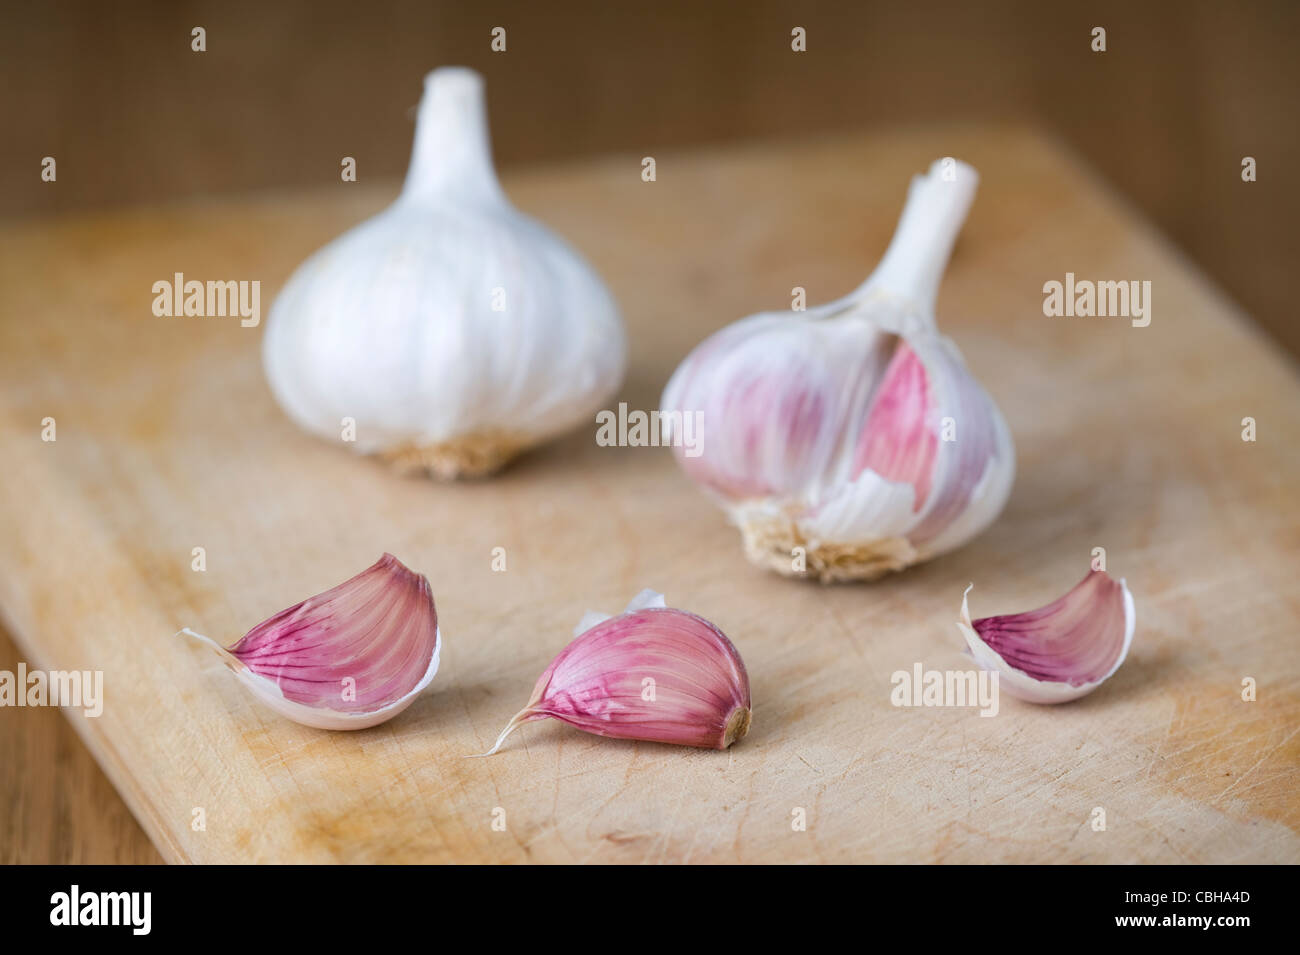 garlic bulbs and cloves on a wooden chopping board - Stock Image